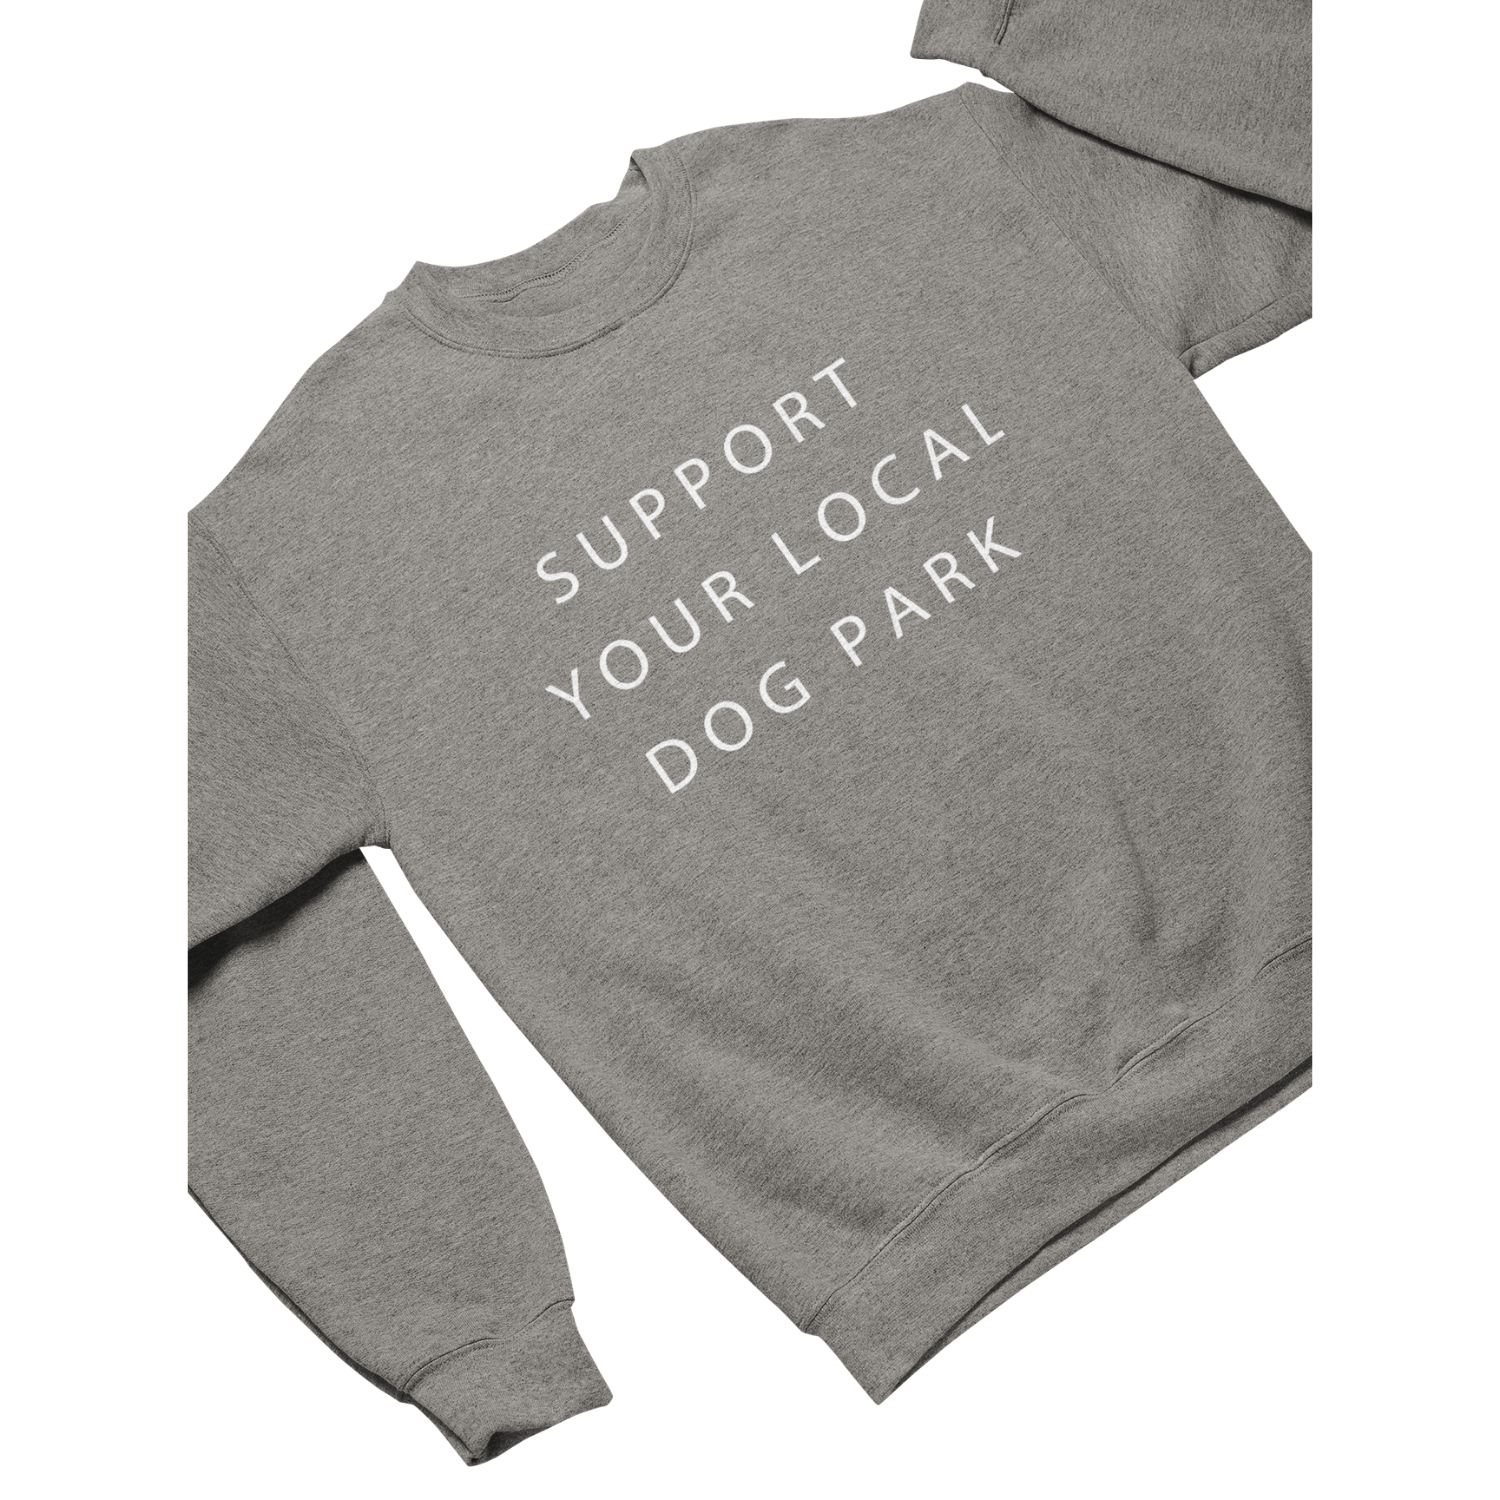 We Heart Winnipeg Dog Park Crewneck